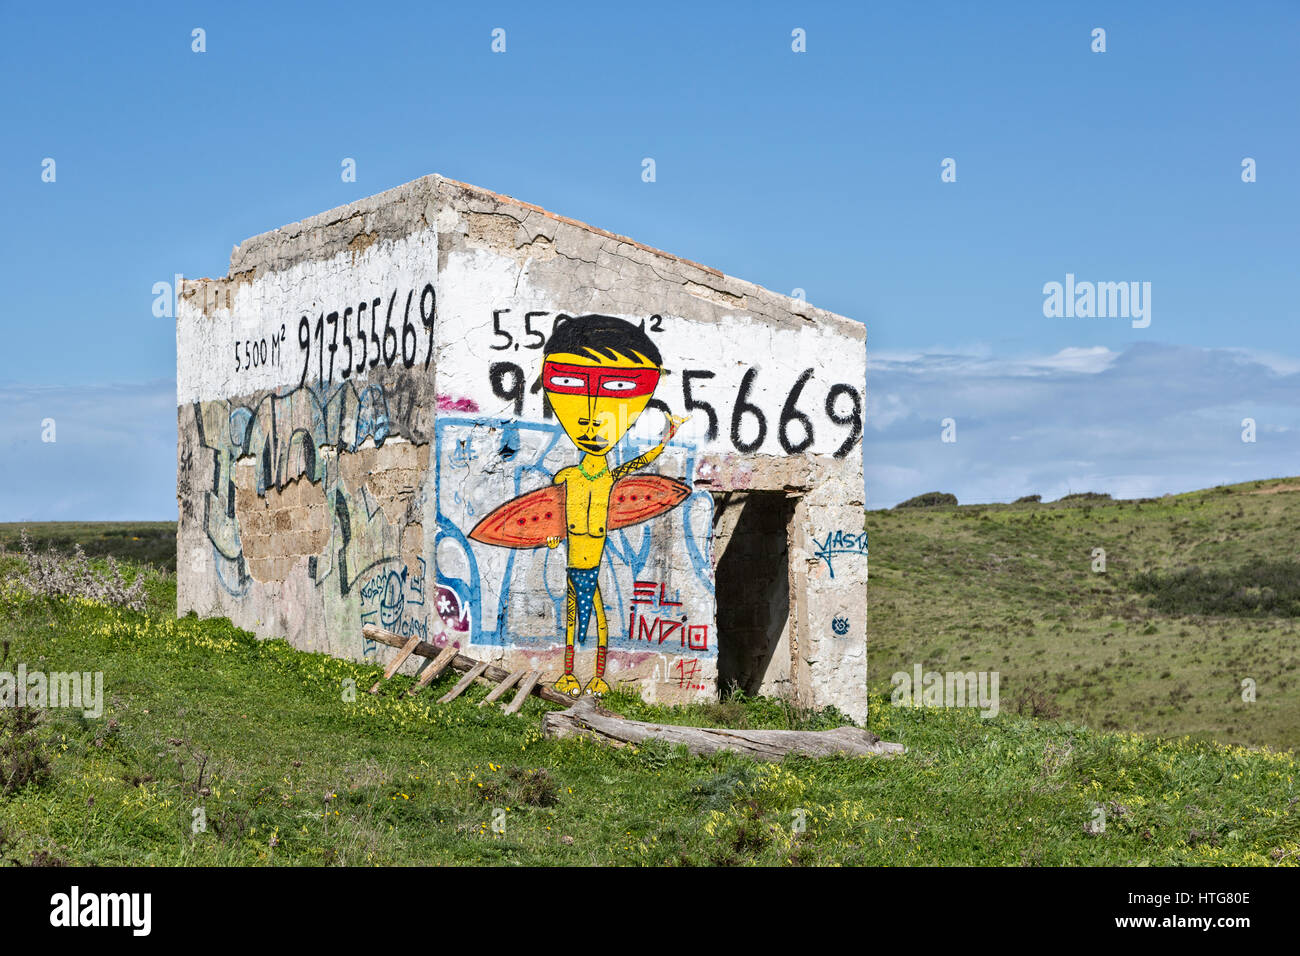 Surfing graffiti on abandoned building, Algarve, Portugal - Stock Image